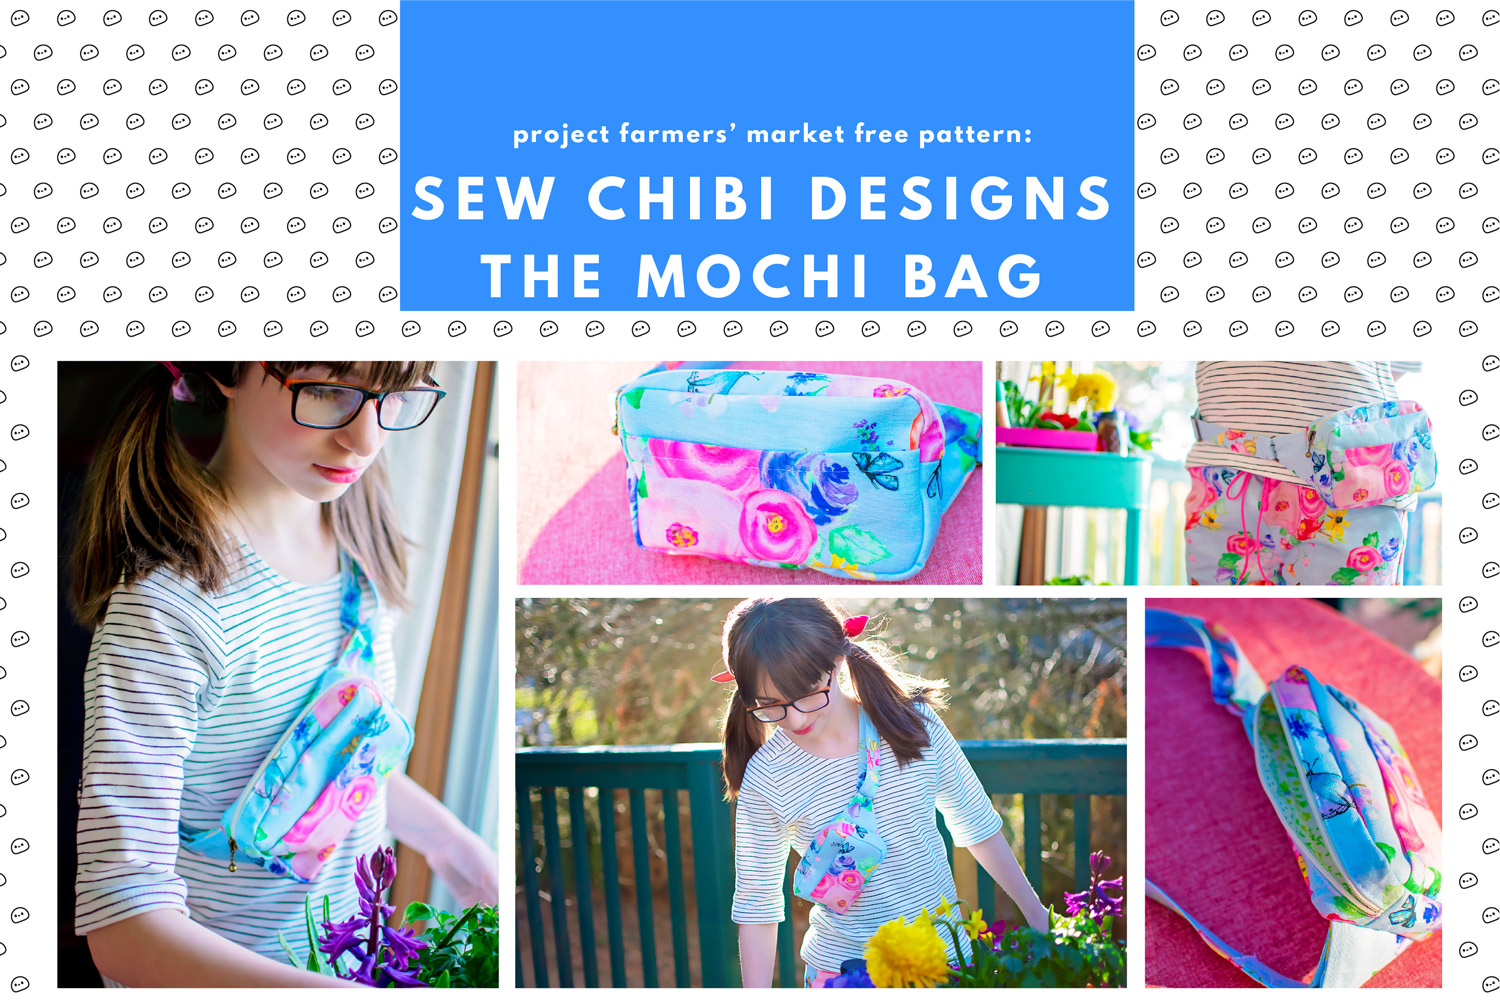 🍡FREE PATTERN! the Mochi Bag for Kids and Adults. An adjustable strap, zippered chest bag (can be worn on hips too!) with a front pocket! A must-have accessory for any outing!  Pairs well with the 🍓Ichigo Bomber Jacket PDF Pattern by Sew Chibi Designs. A lightweight, color blocked, knit coat for all kids: boys and girls, from baby to teen! Perfect for spring! Grab a copy of the pattern for $9 USD.